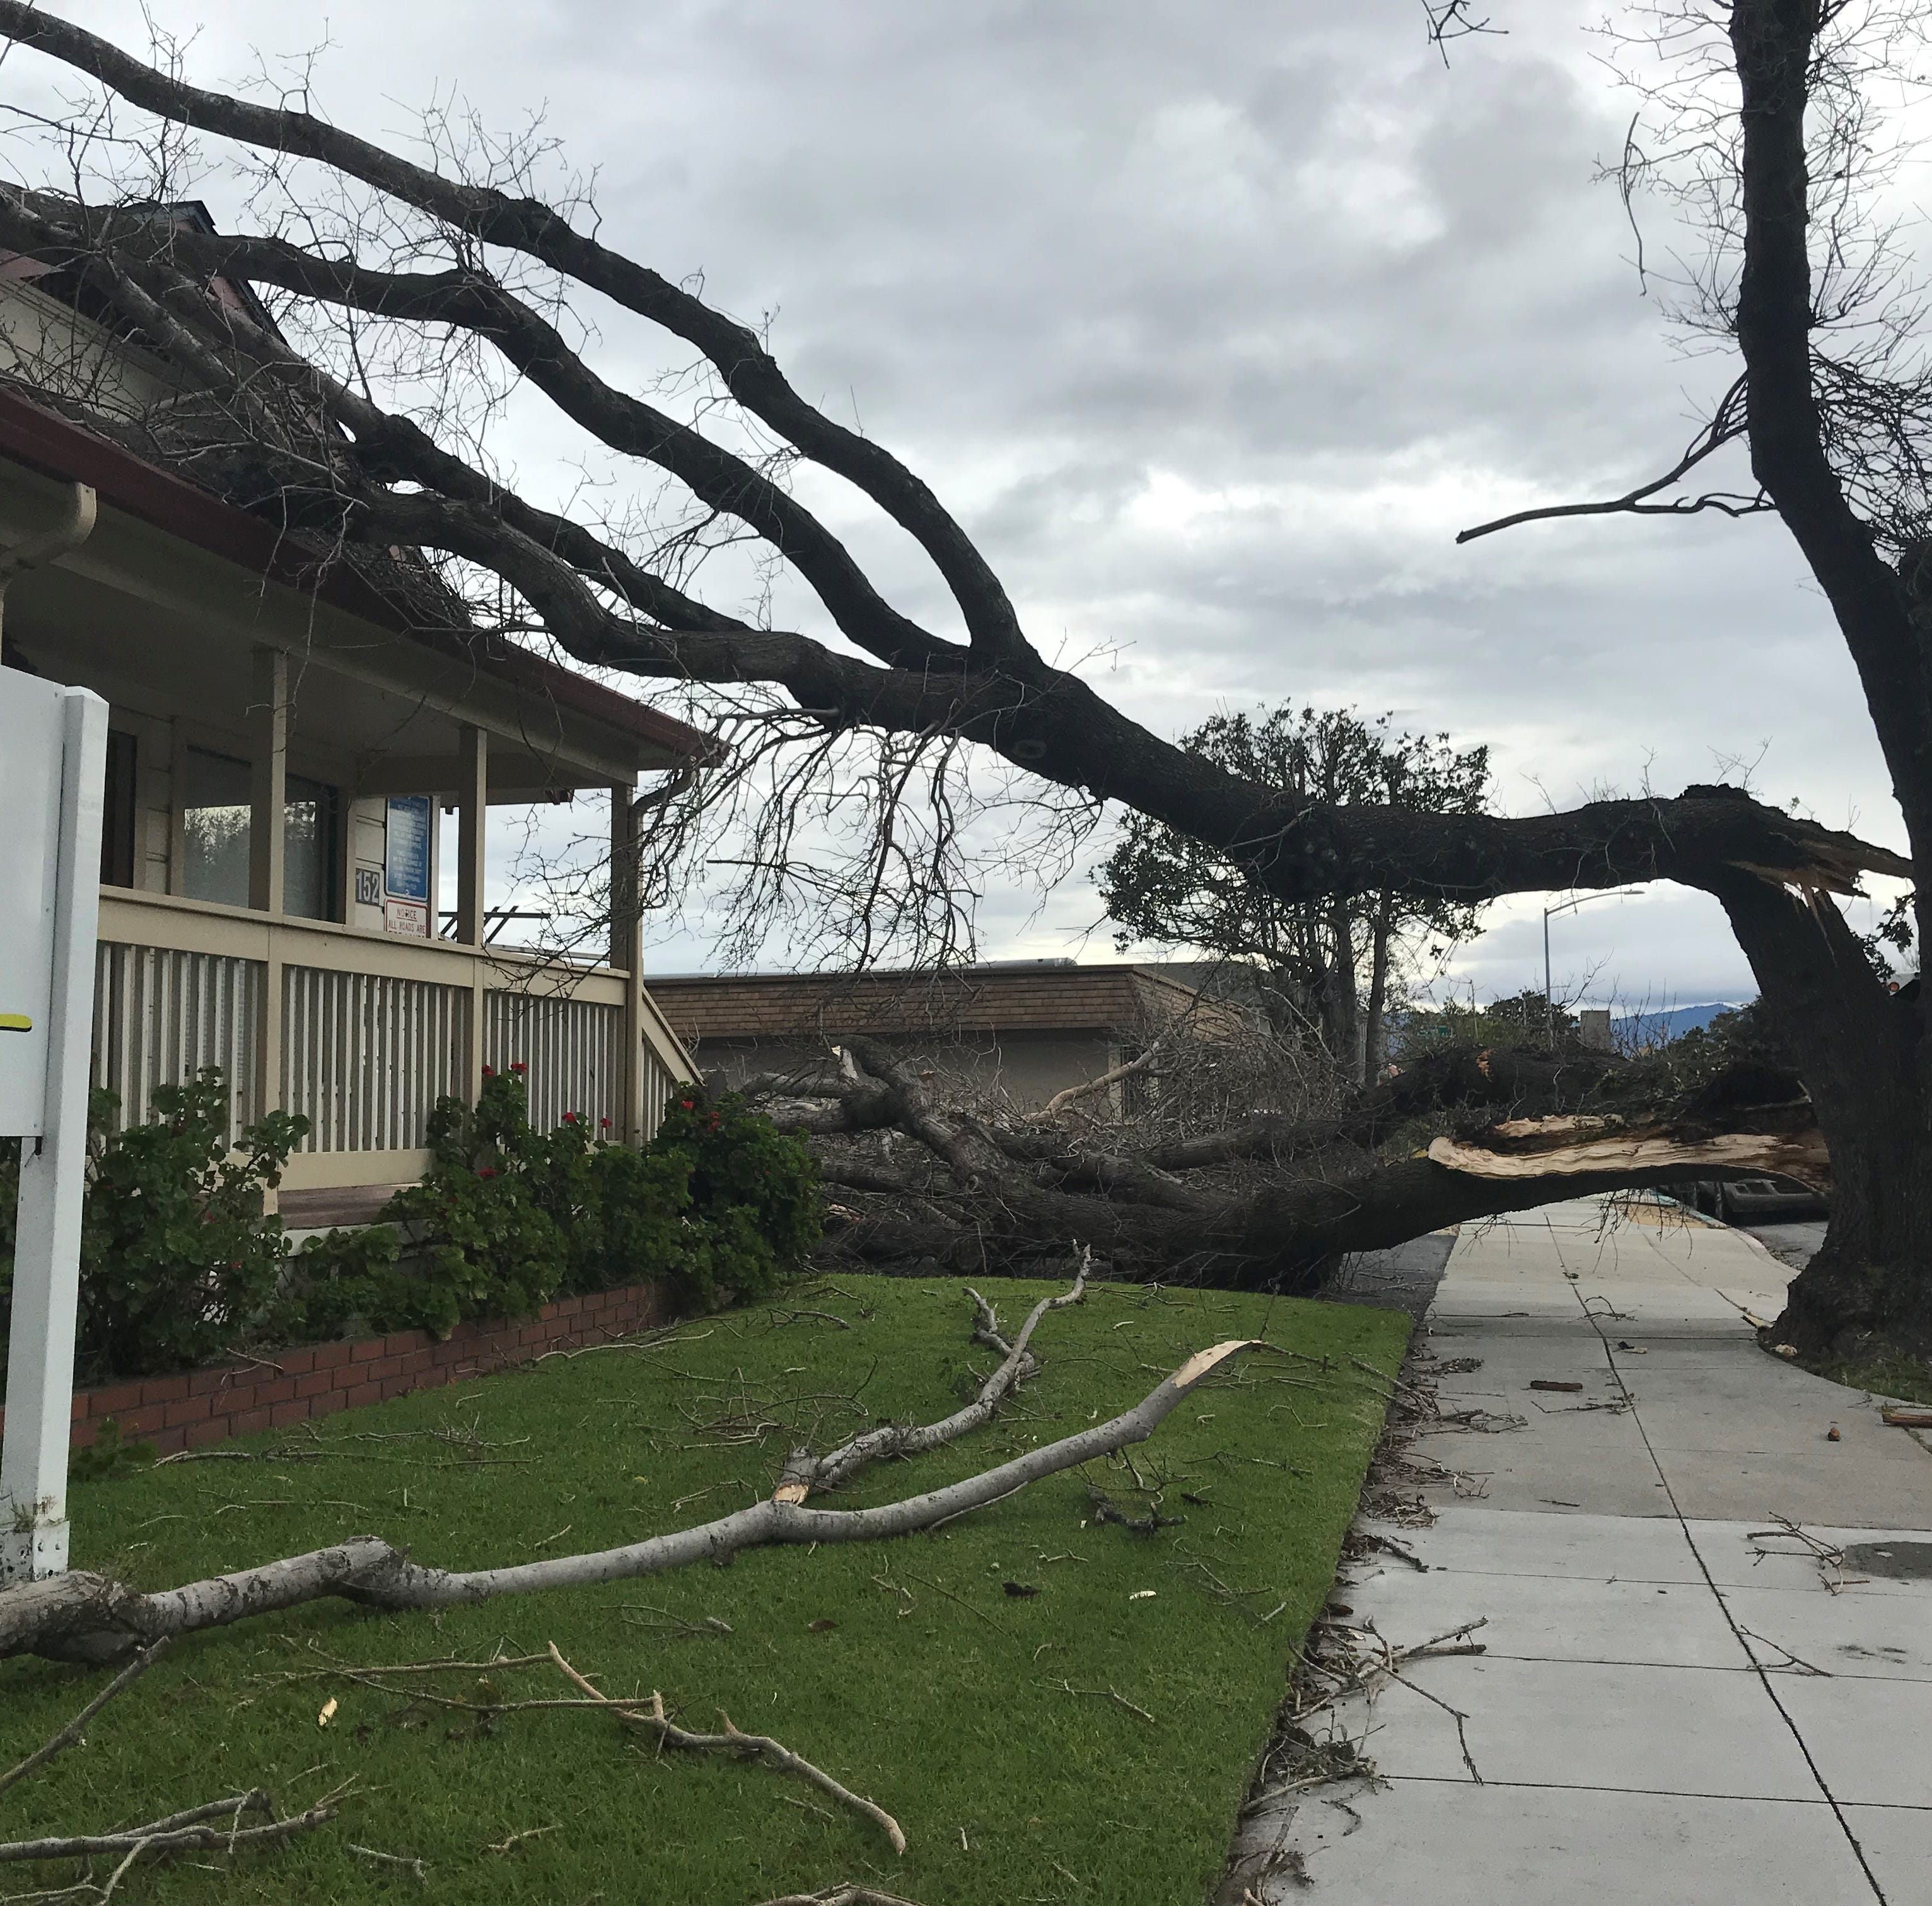 Live updates: Strong winds knock down trees and poles, cause power outages in Salinas